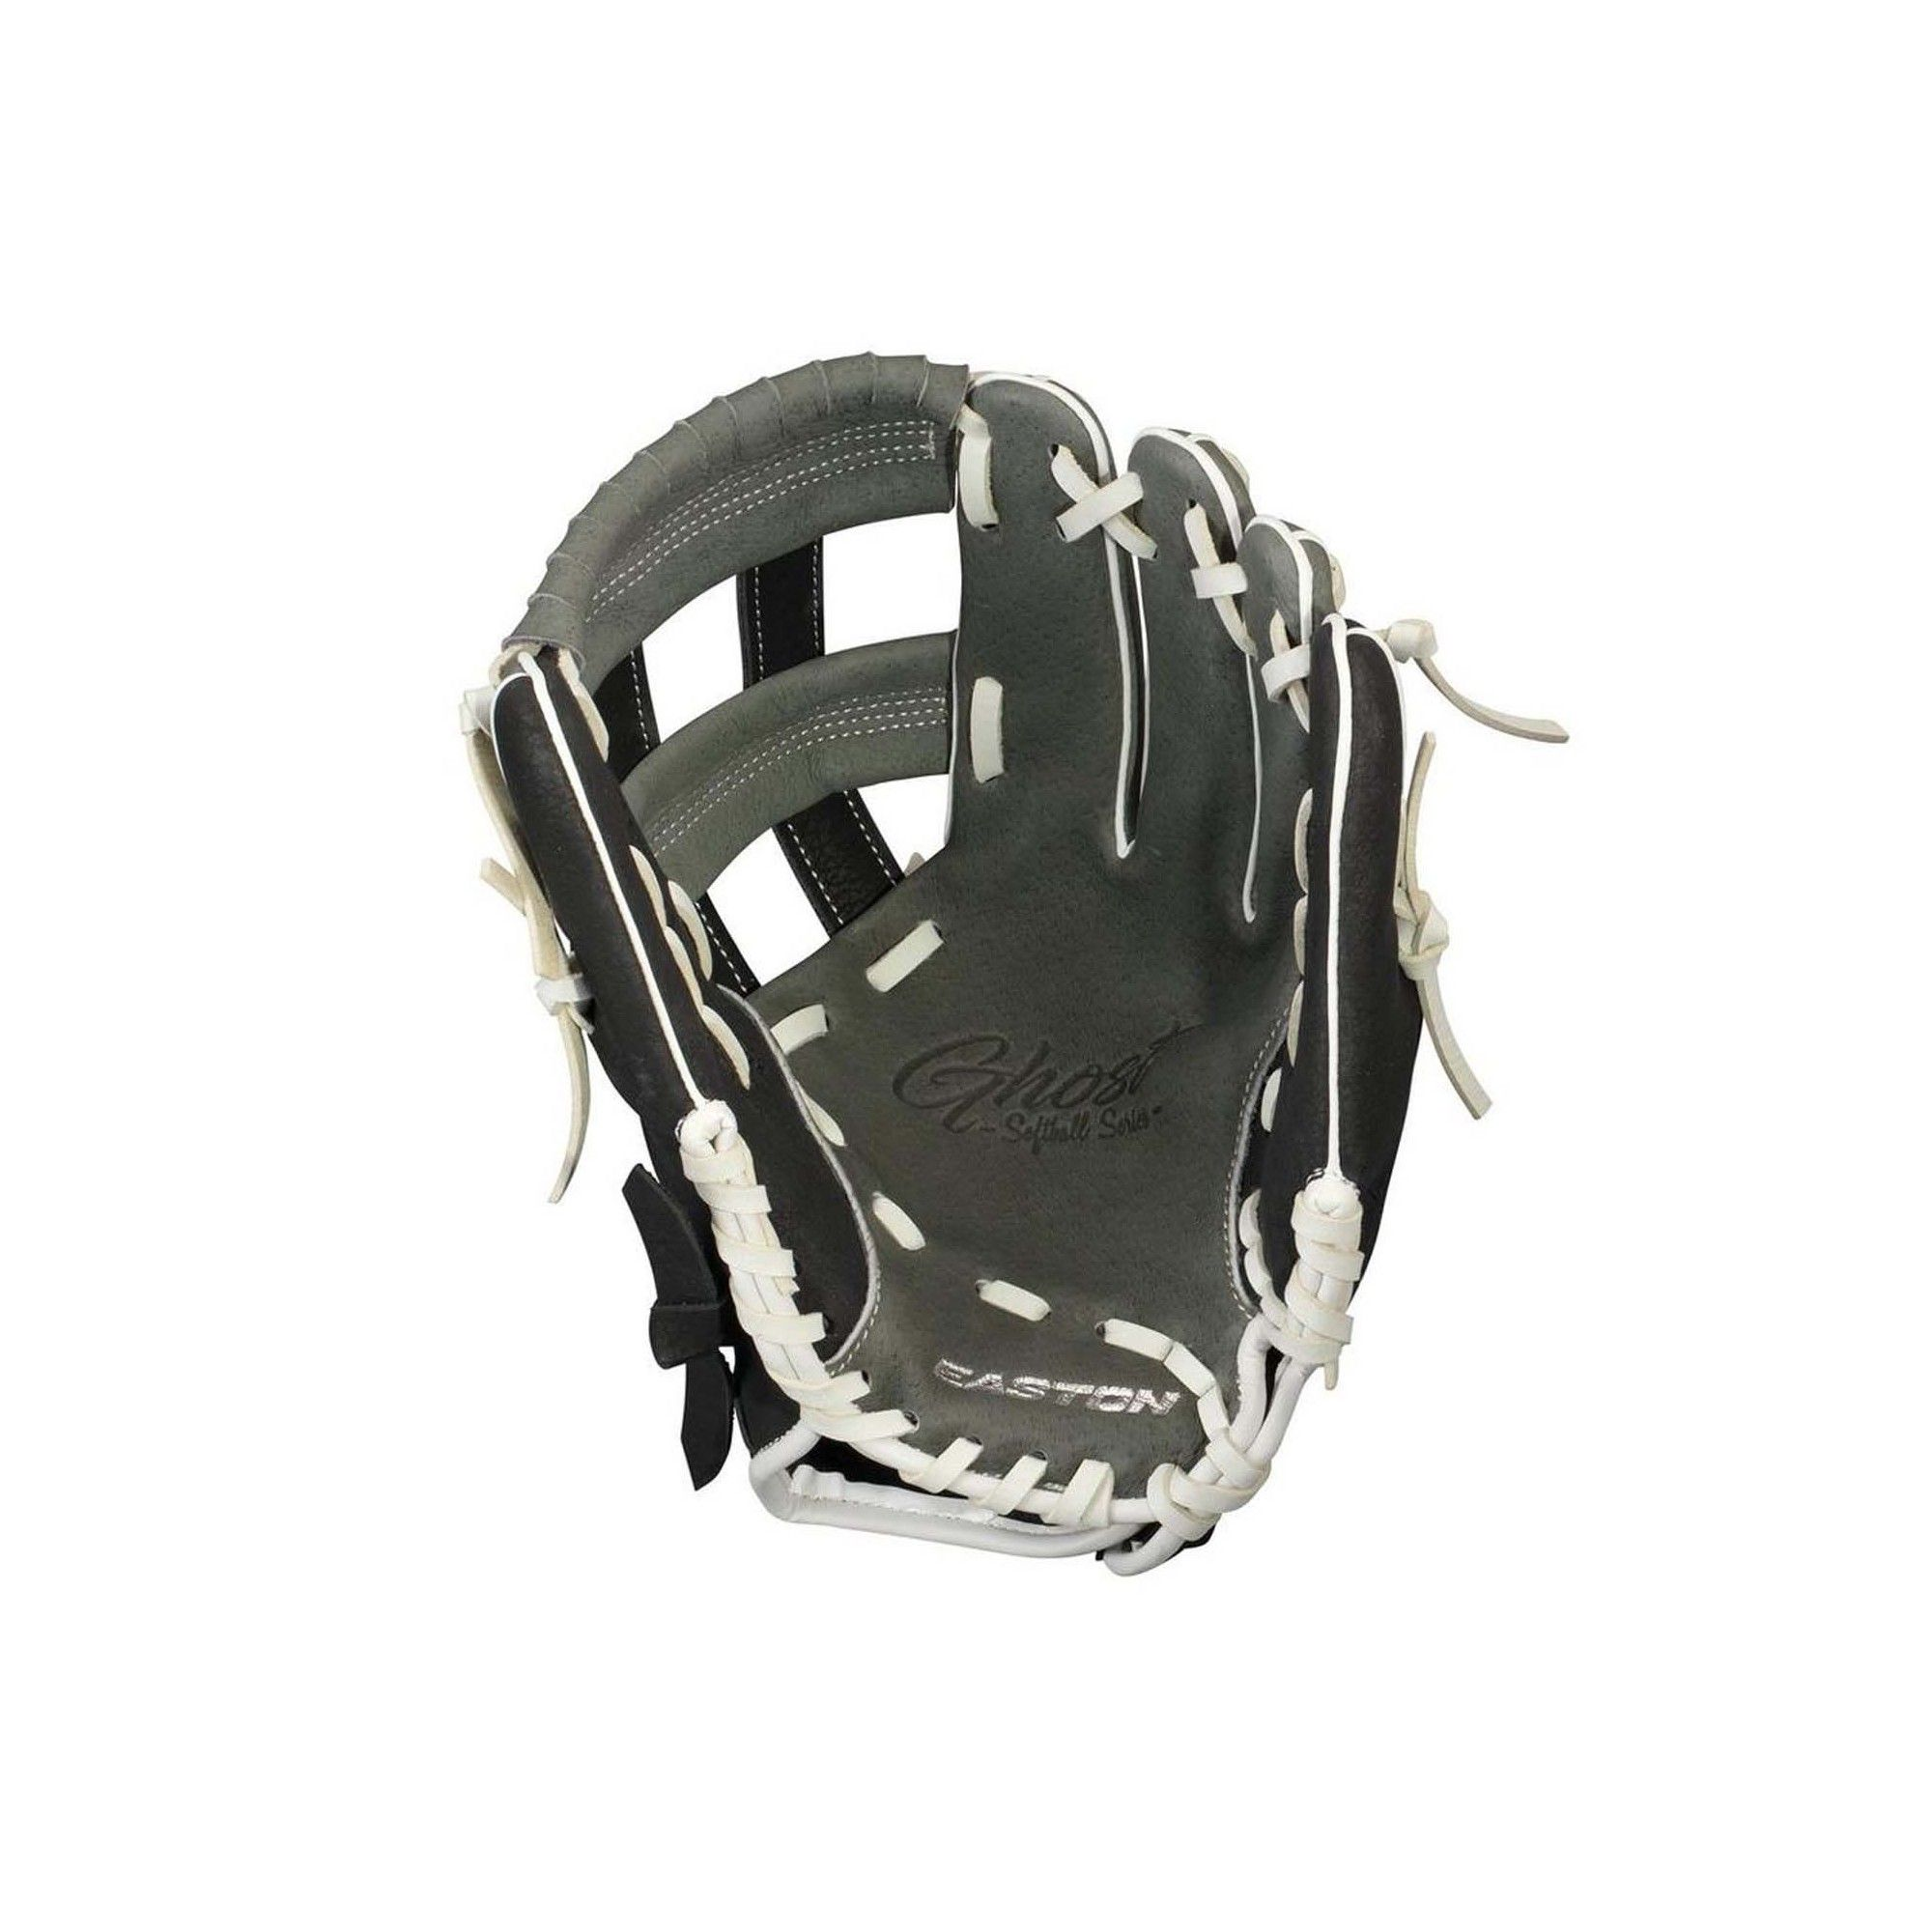 Easton 10 5 Right Hand Throw Ghost Flex Fastpitch Fielder S Glove